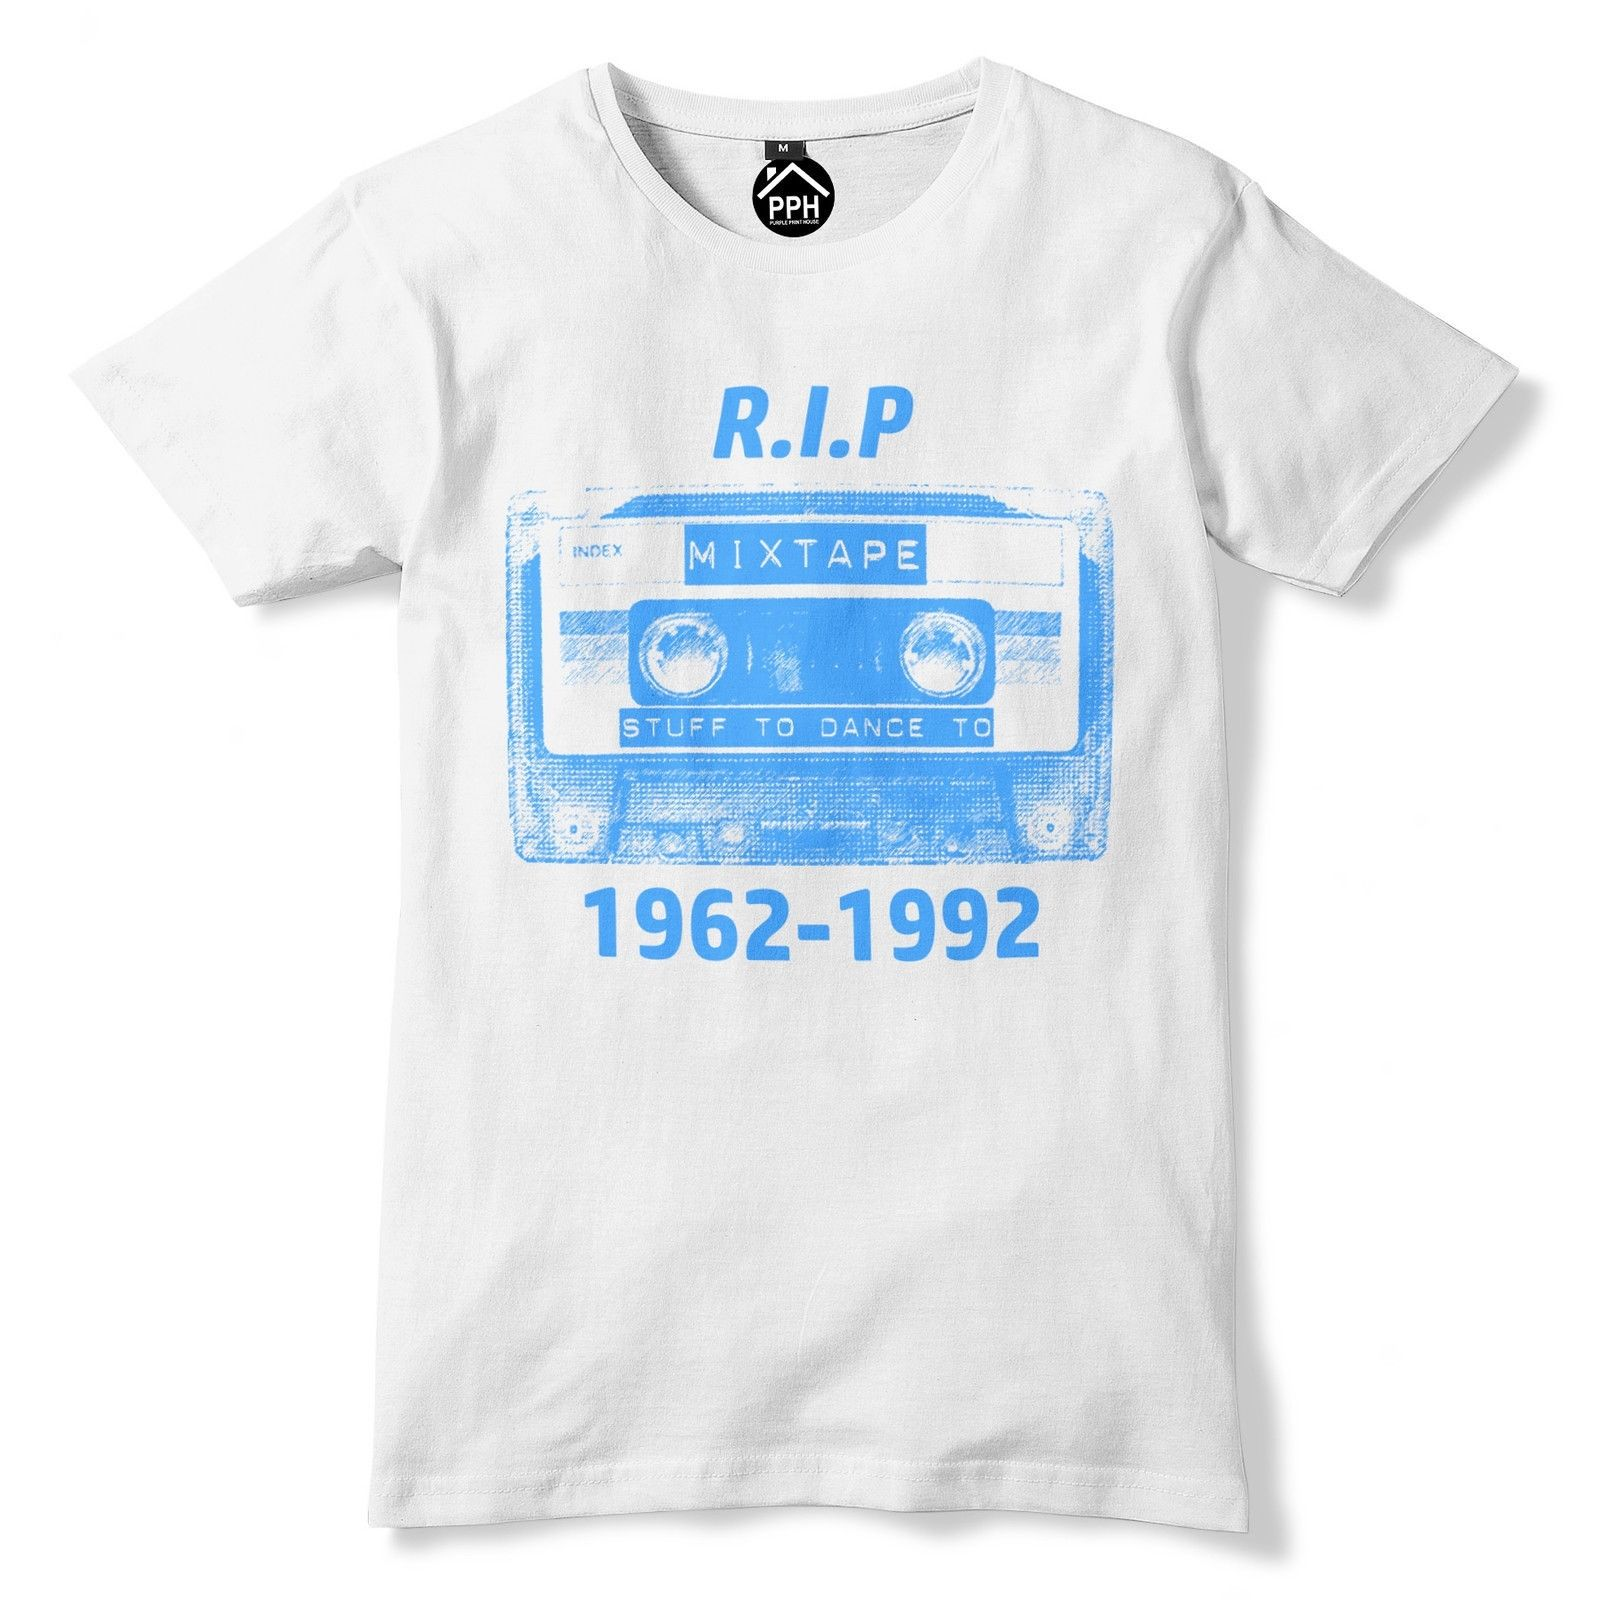 Plus Size Sleeve Tops Tshirt Homme Rip Cassette Tape T Shirt Old School 80S 90S Music Tshirt Top Disco Dance80S T Shirts image